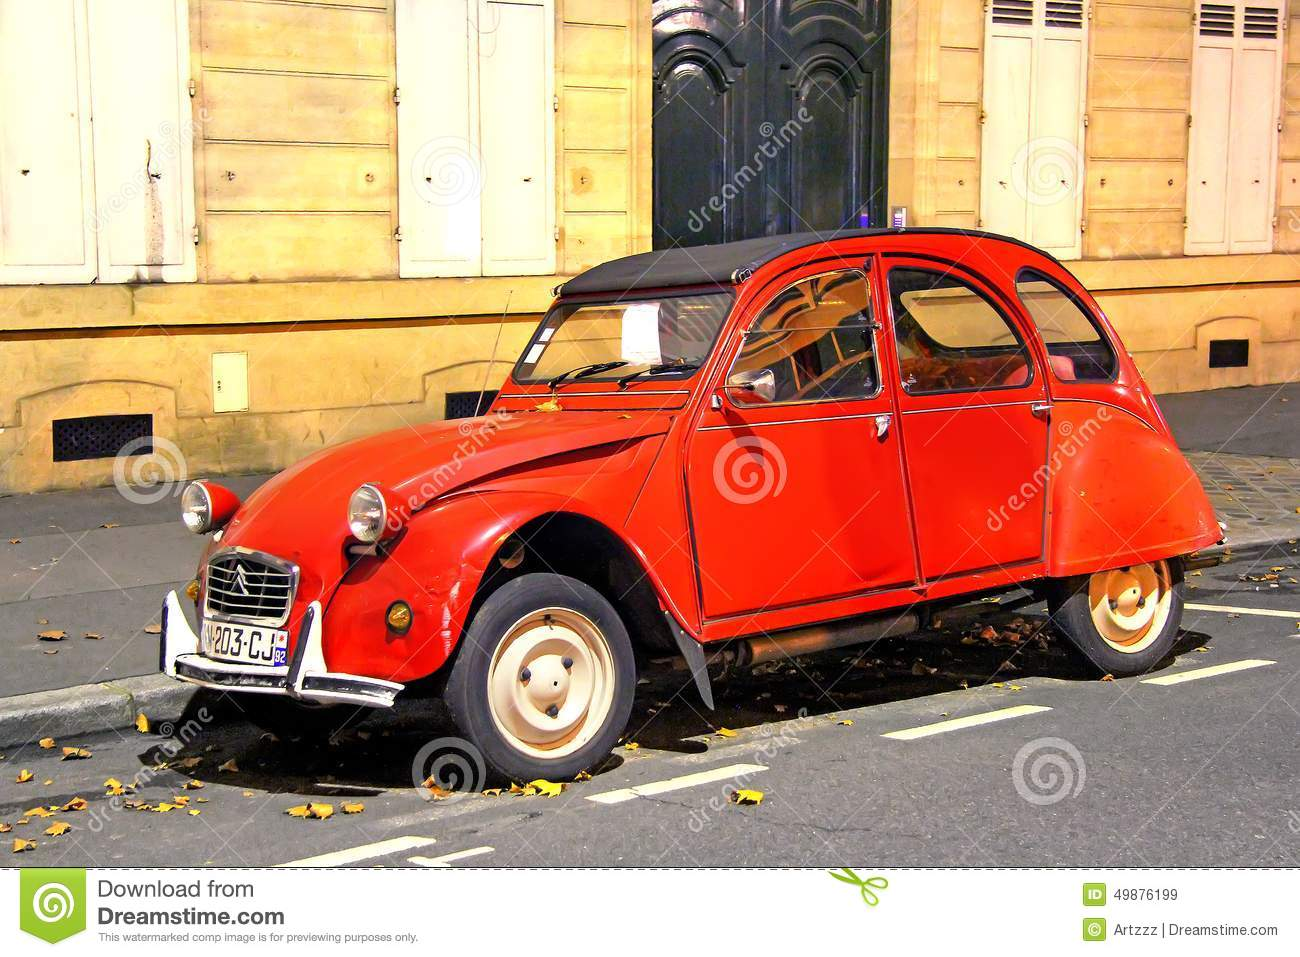 citroen 2cv editorial stock image image of outside hatchback 49876199. Black Bedroom Furniture Sets. Home Design Ideas